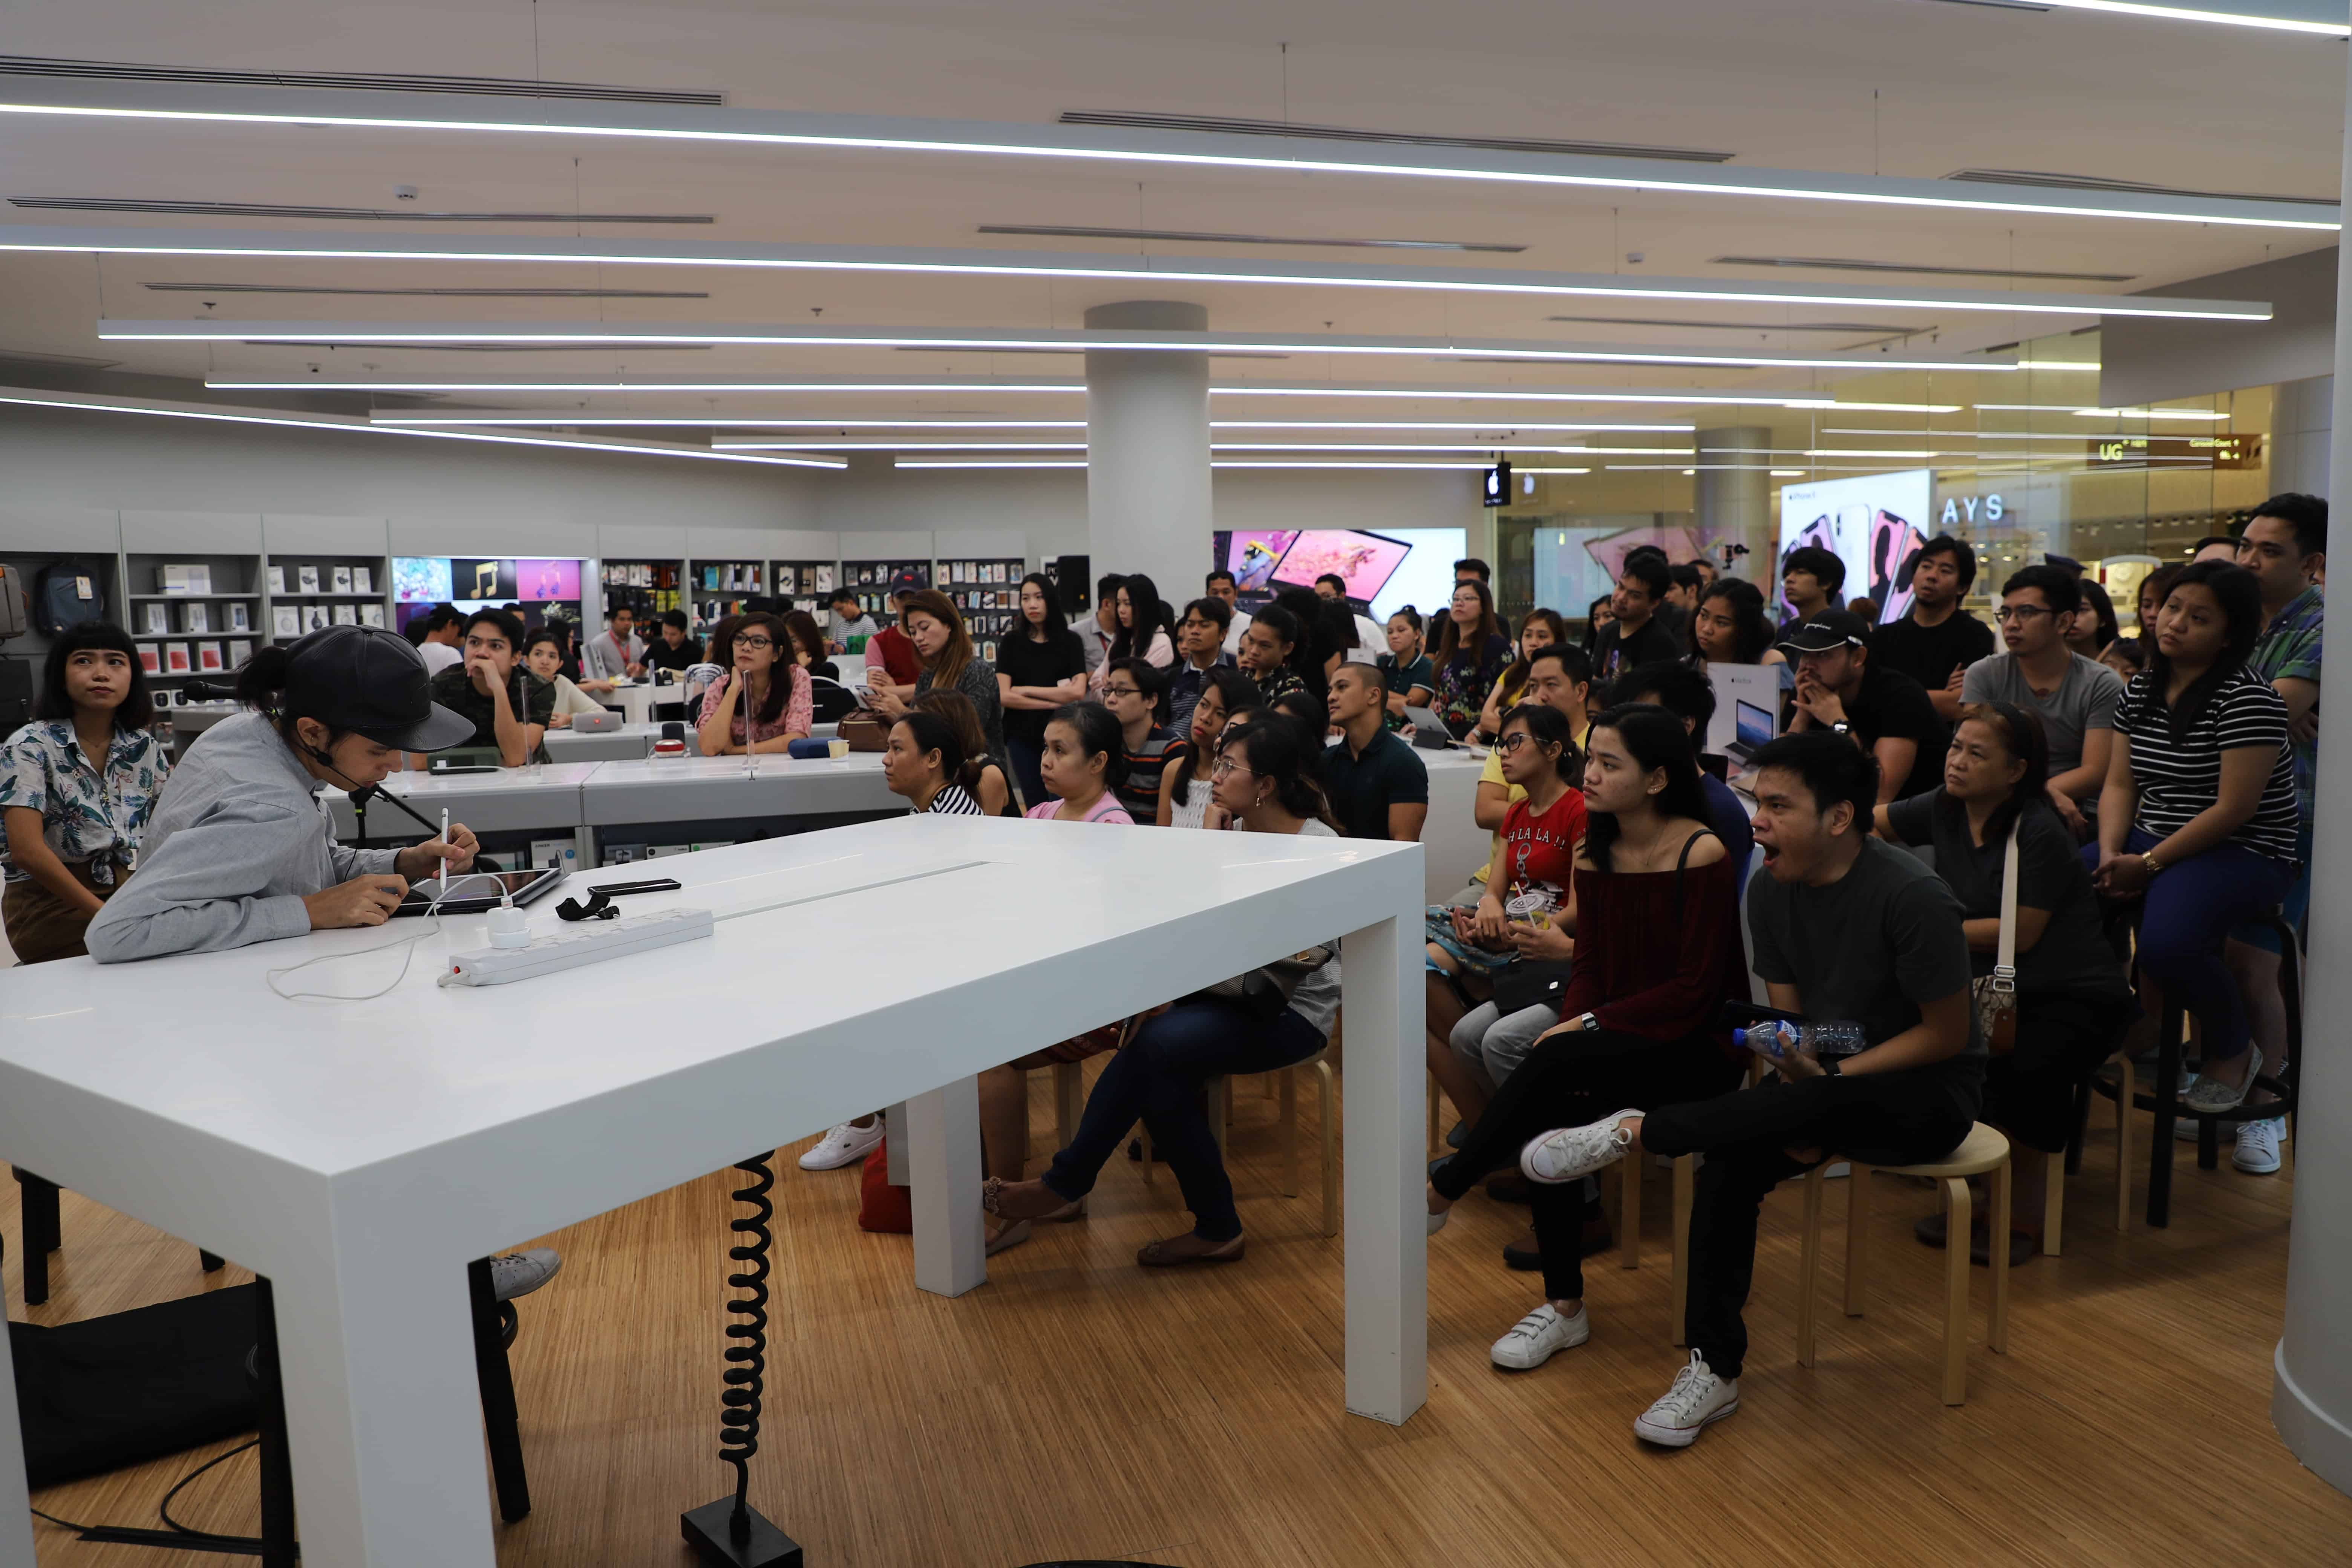 A crowd attended the Pixelworx live demo